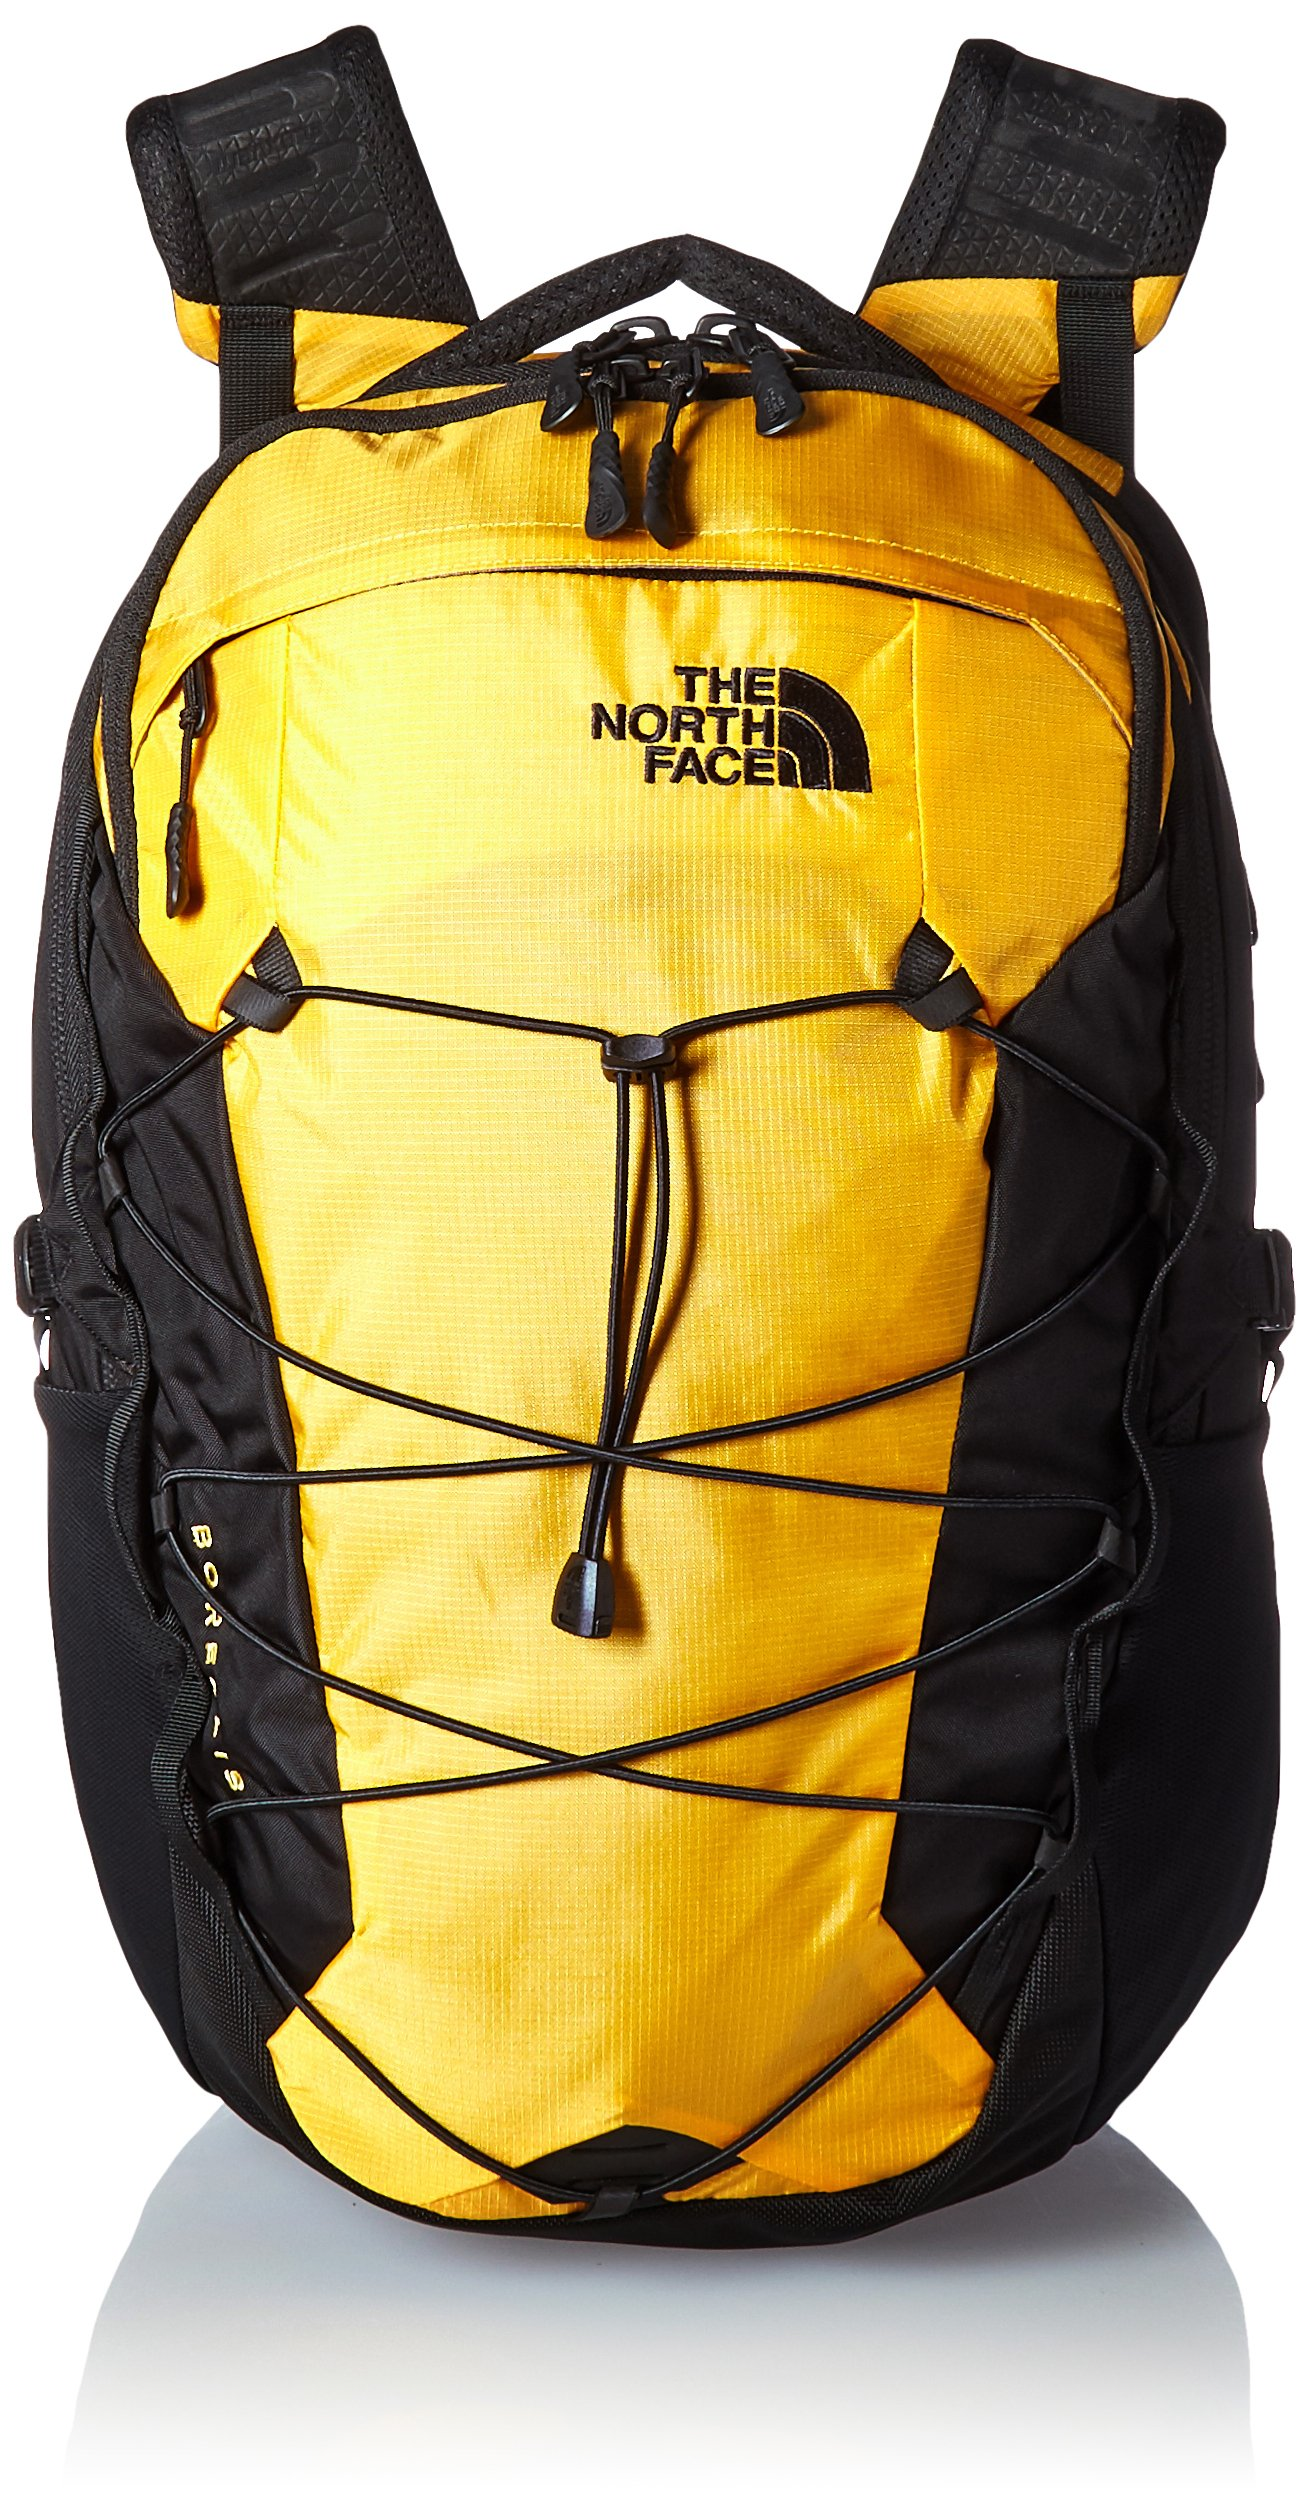 The North Face Unisex Borealis Tnf Yellow Ripstop/Tnf Blak One Size by The North Face